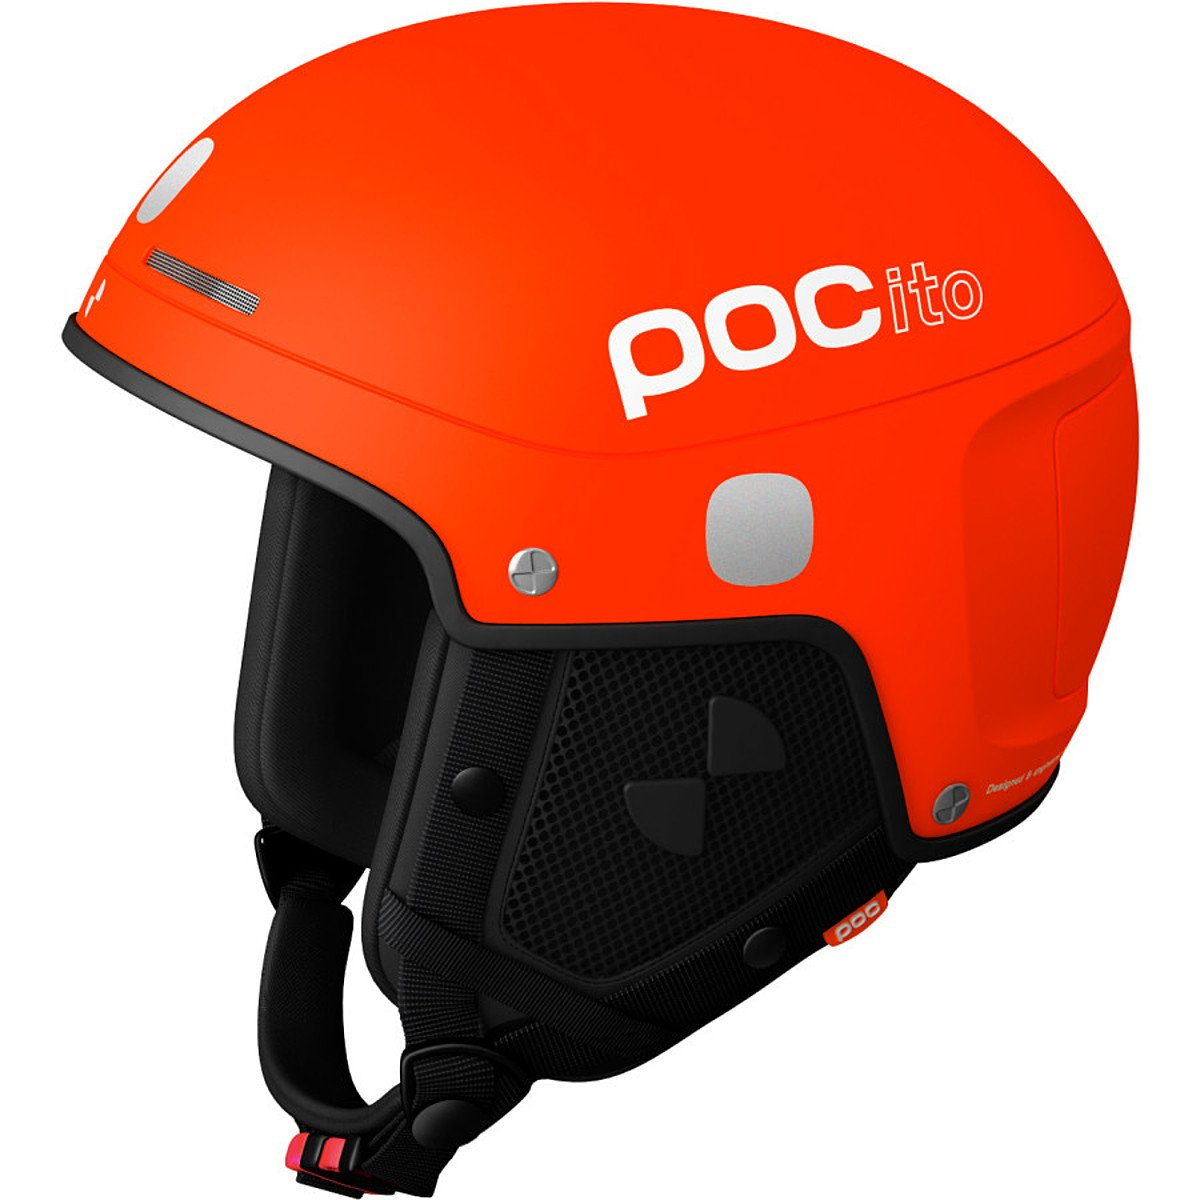 POC - POCito Skull Light, Fluorescent Orange, XS/S